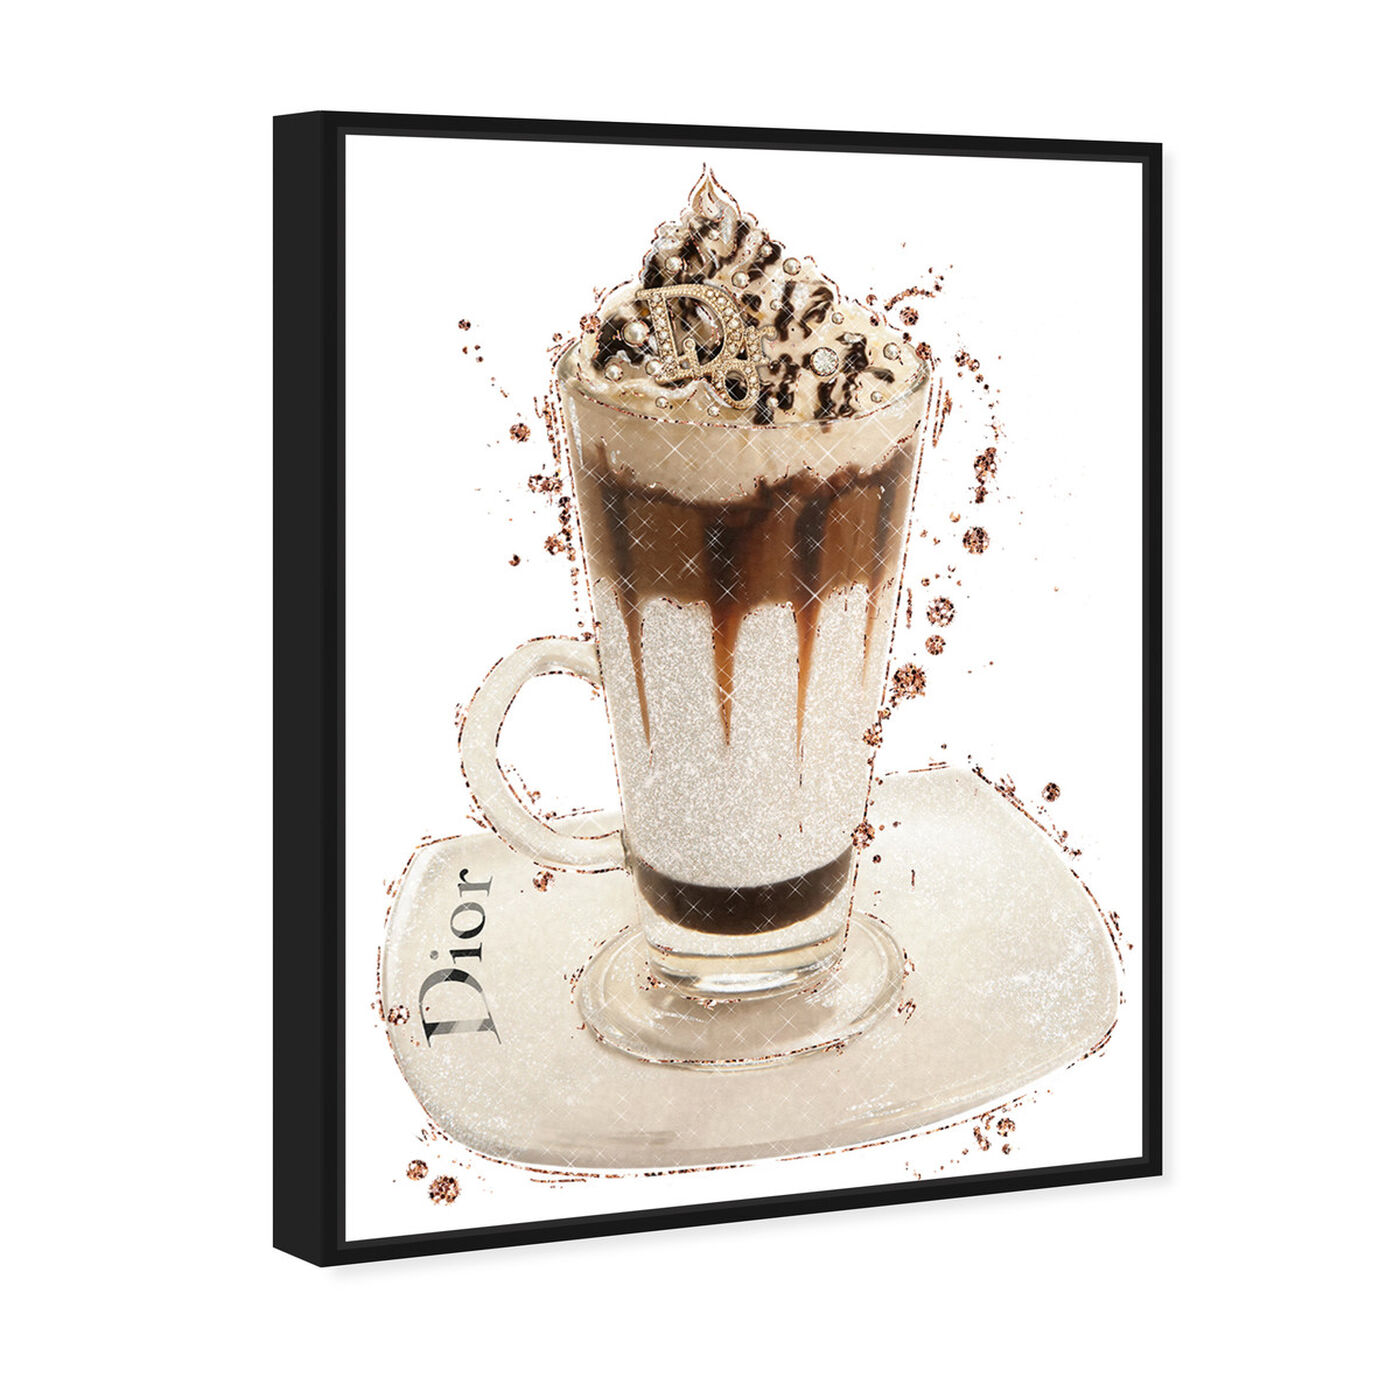 Angled view of Vanilla Creamy Frappe featuring drinks and spirits and coffee art.